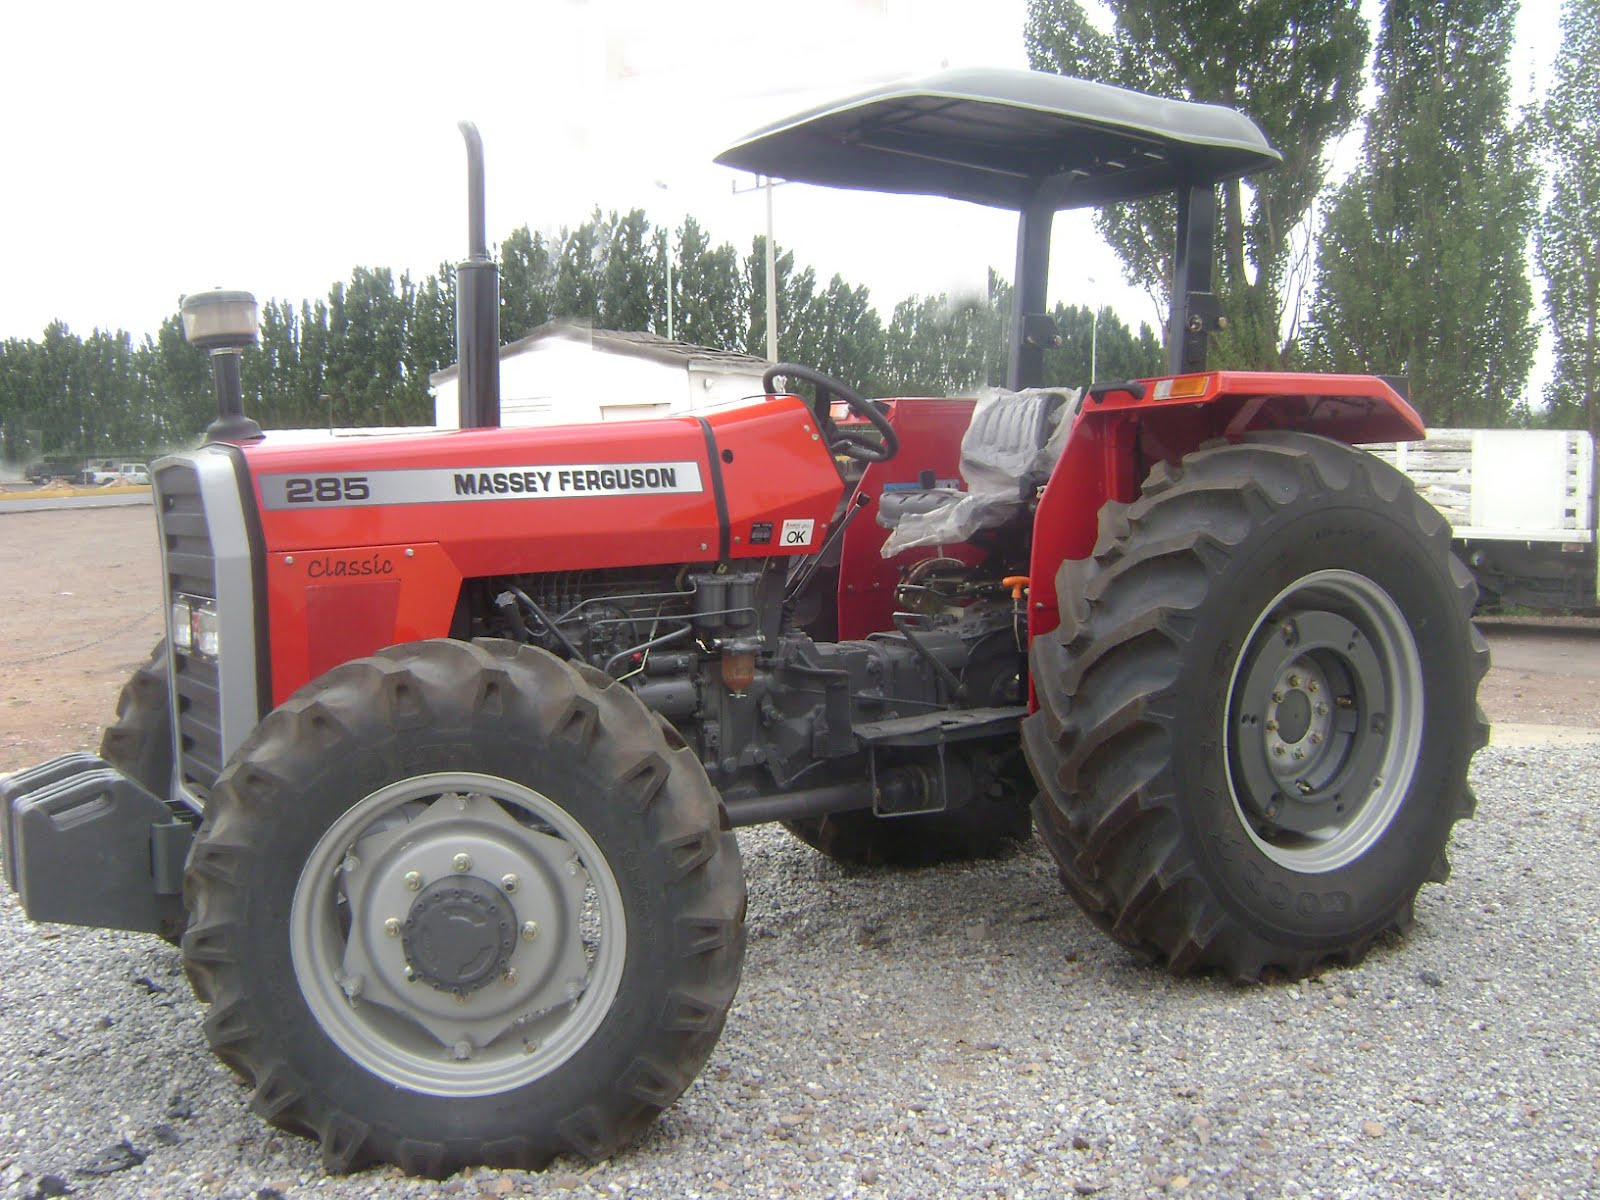 Massey ferguson 86 photo - 2